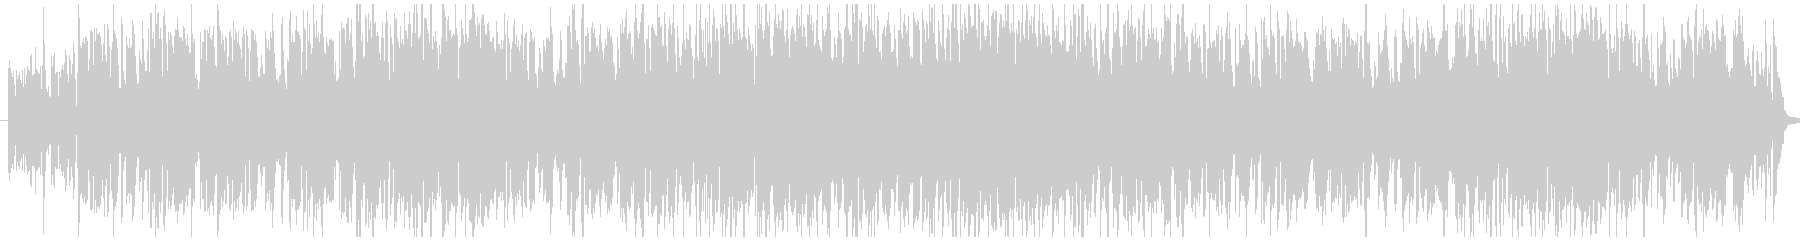 Comedy tone with funny sounds's unreproduced waveform